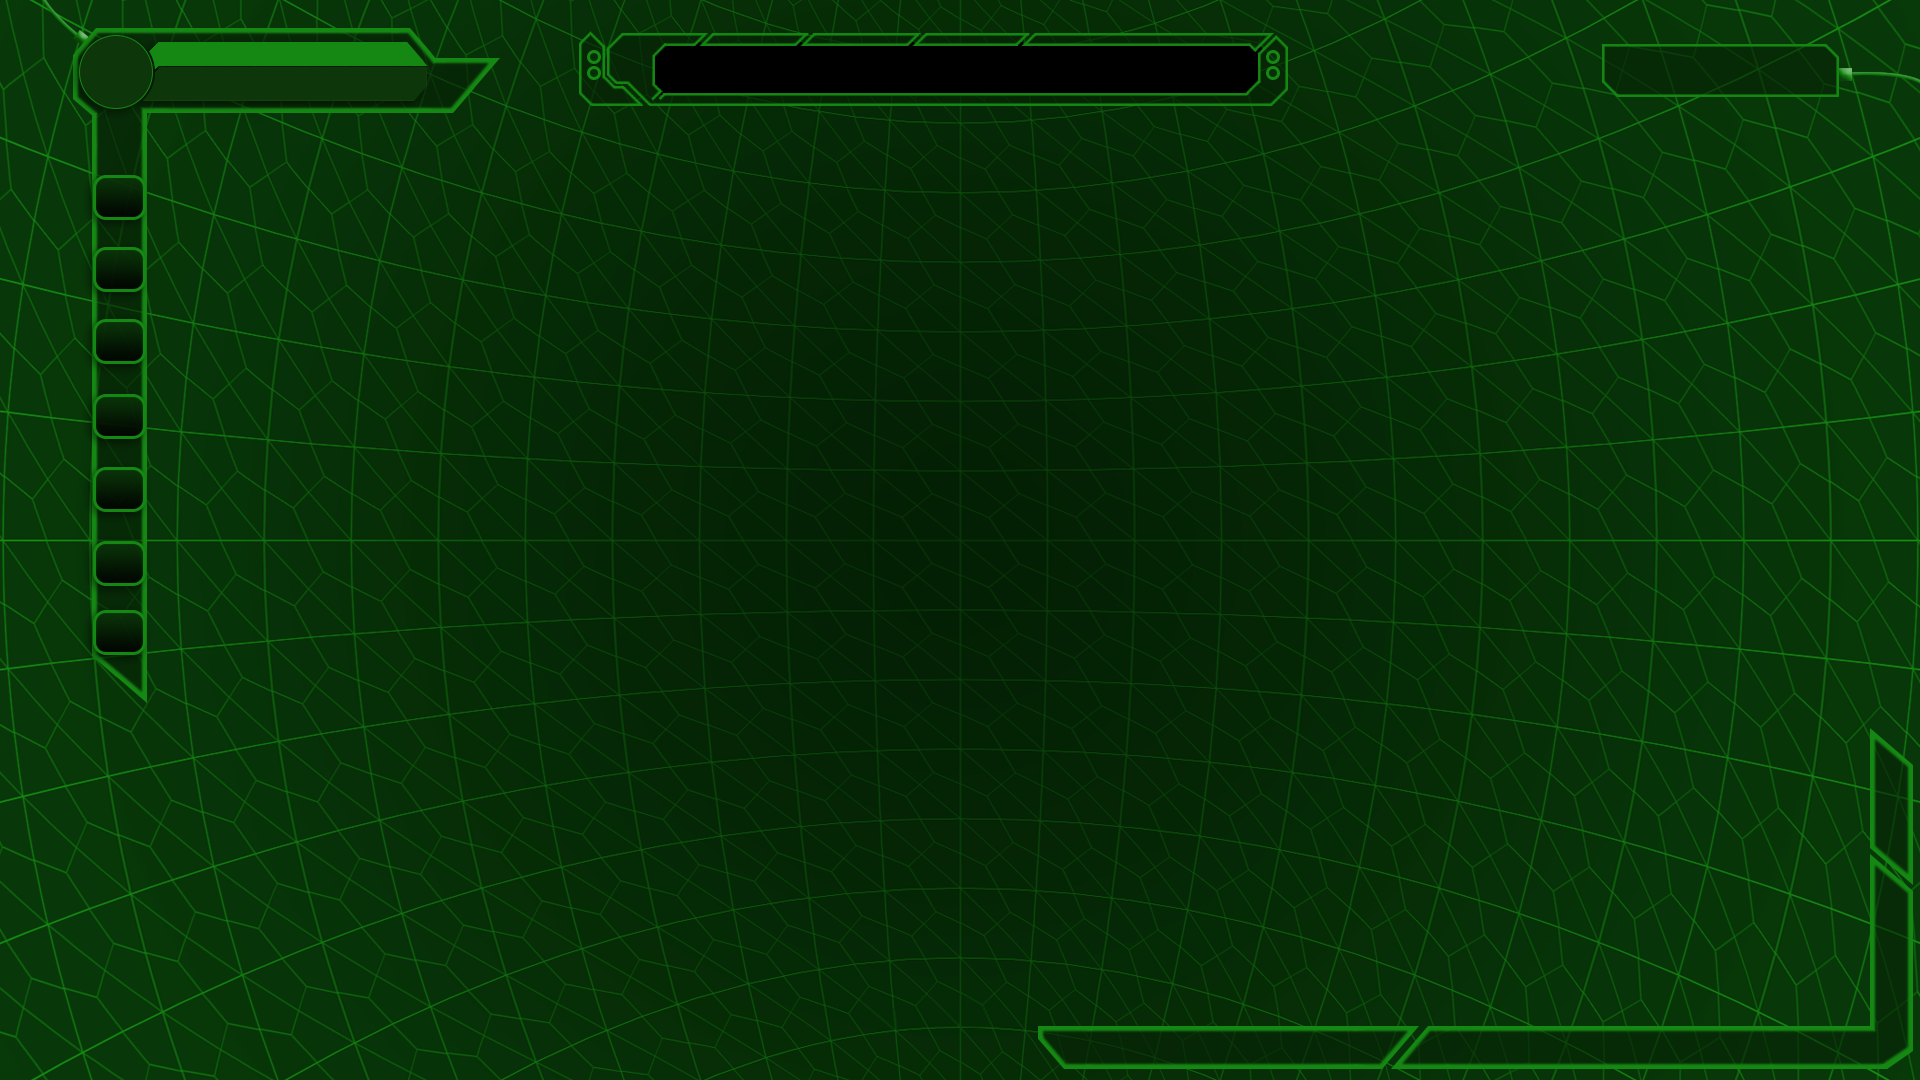 old school xbox dashboard theme with spherical background overlay